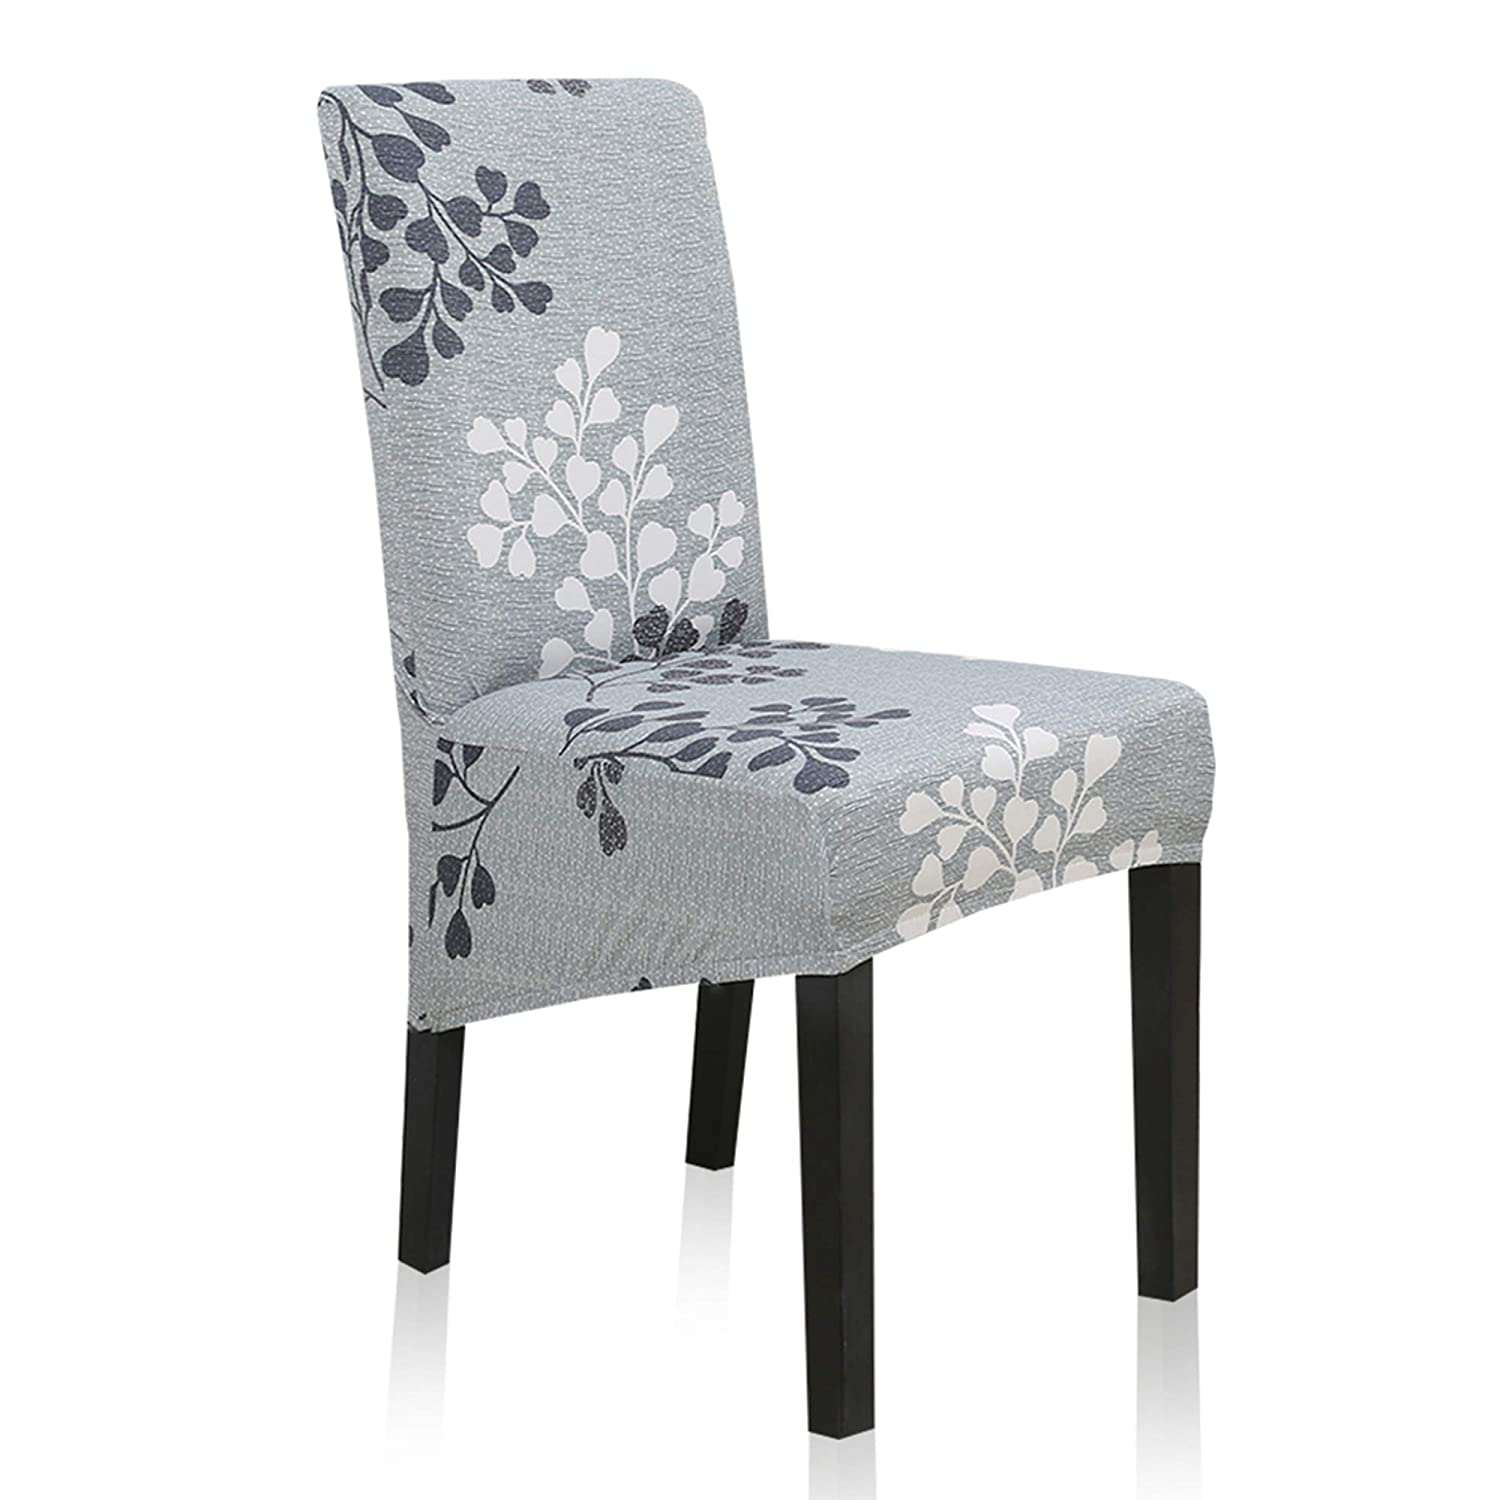 Buy Stretch Dining Chair Covers, XL/Oversized Removable Washable